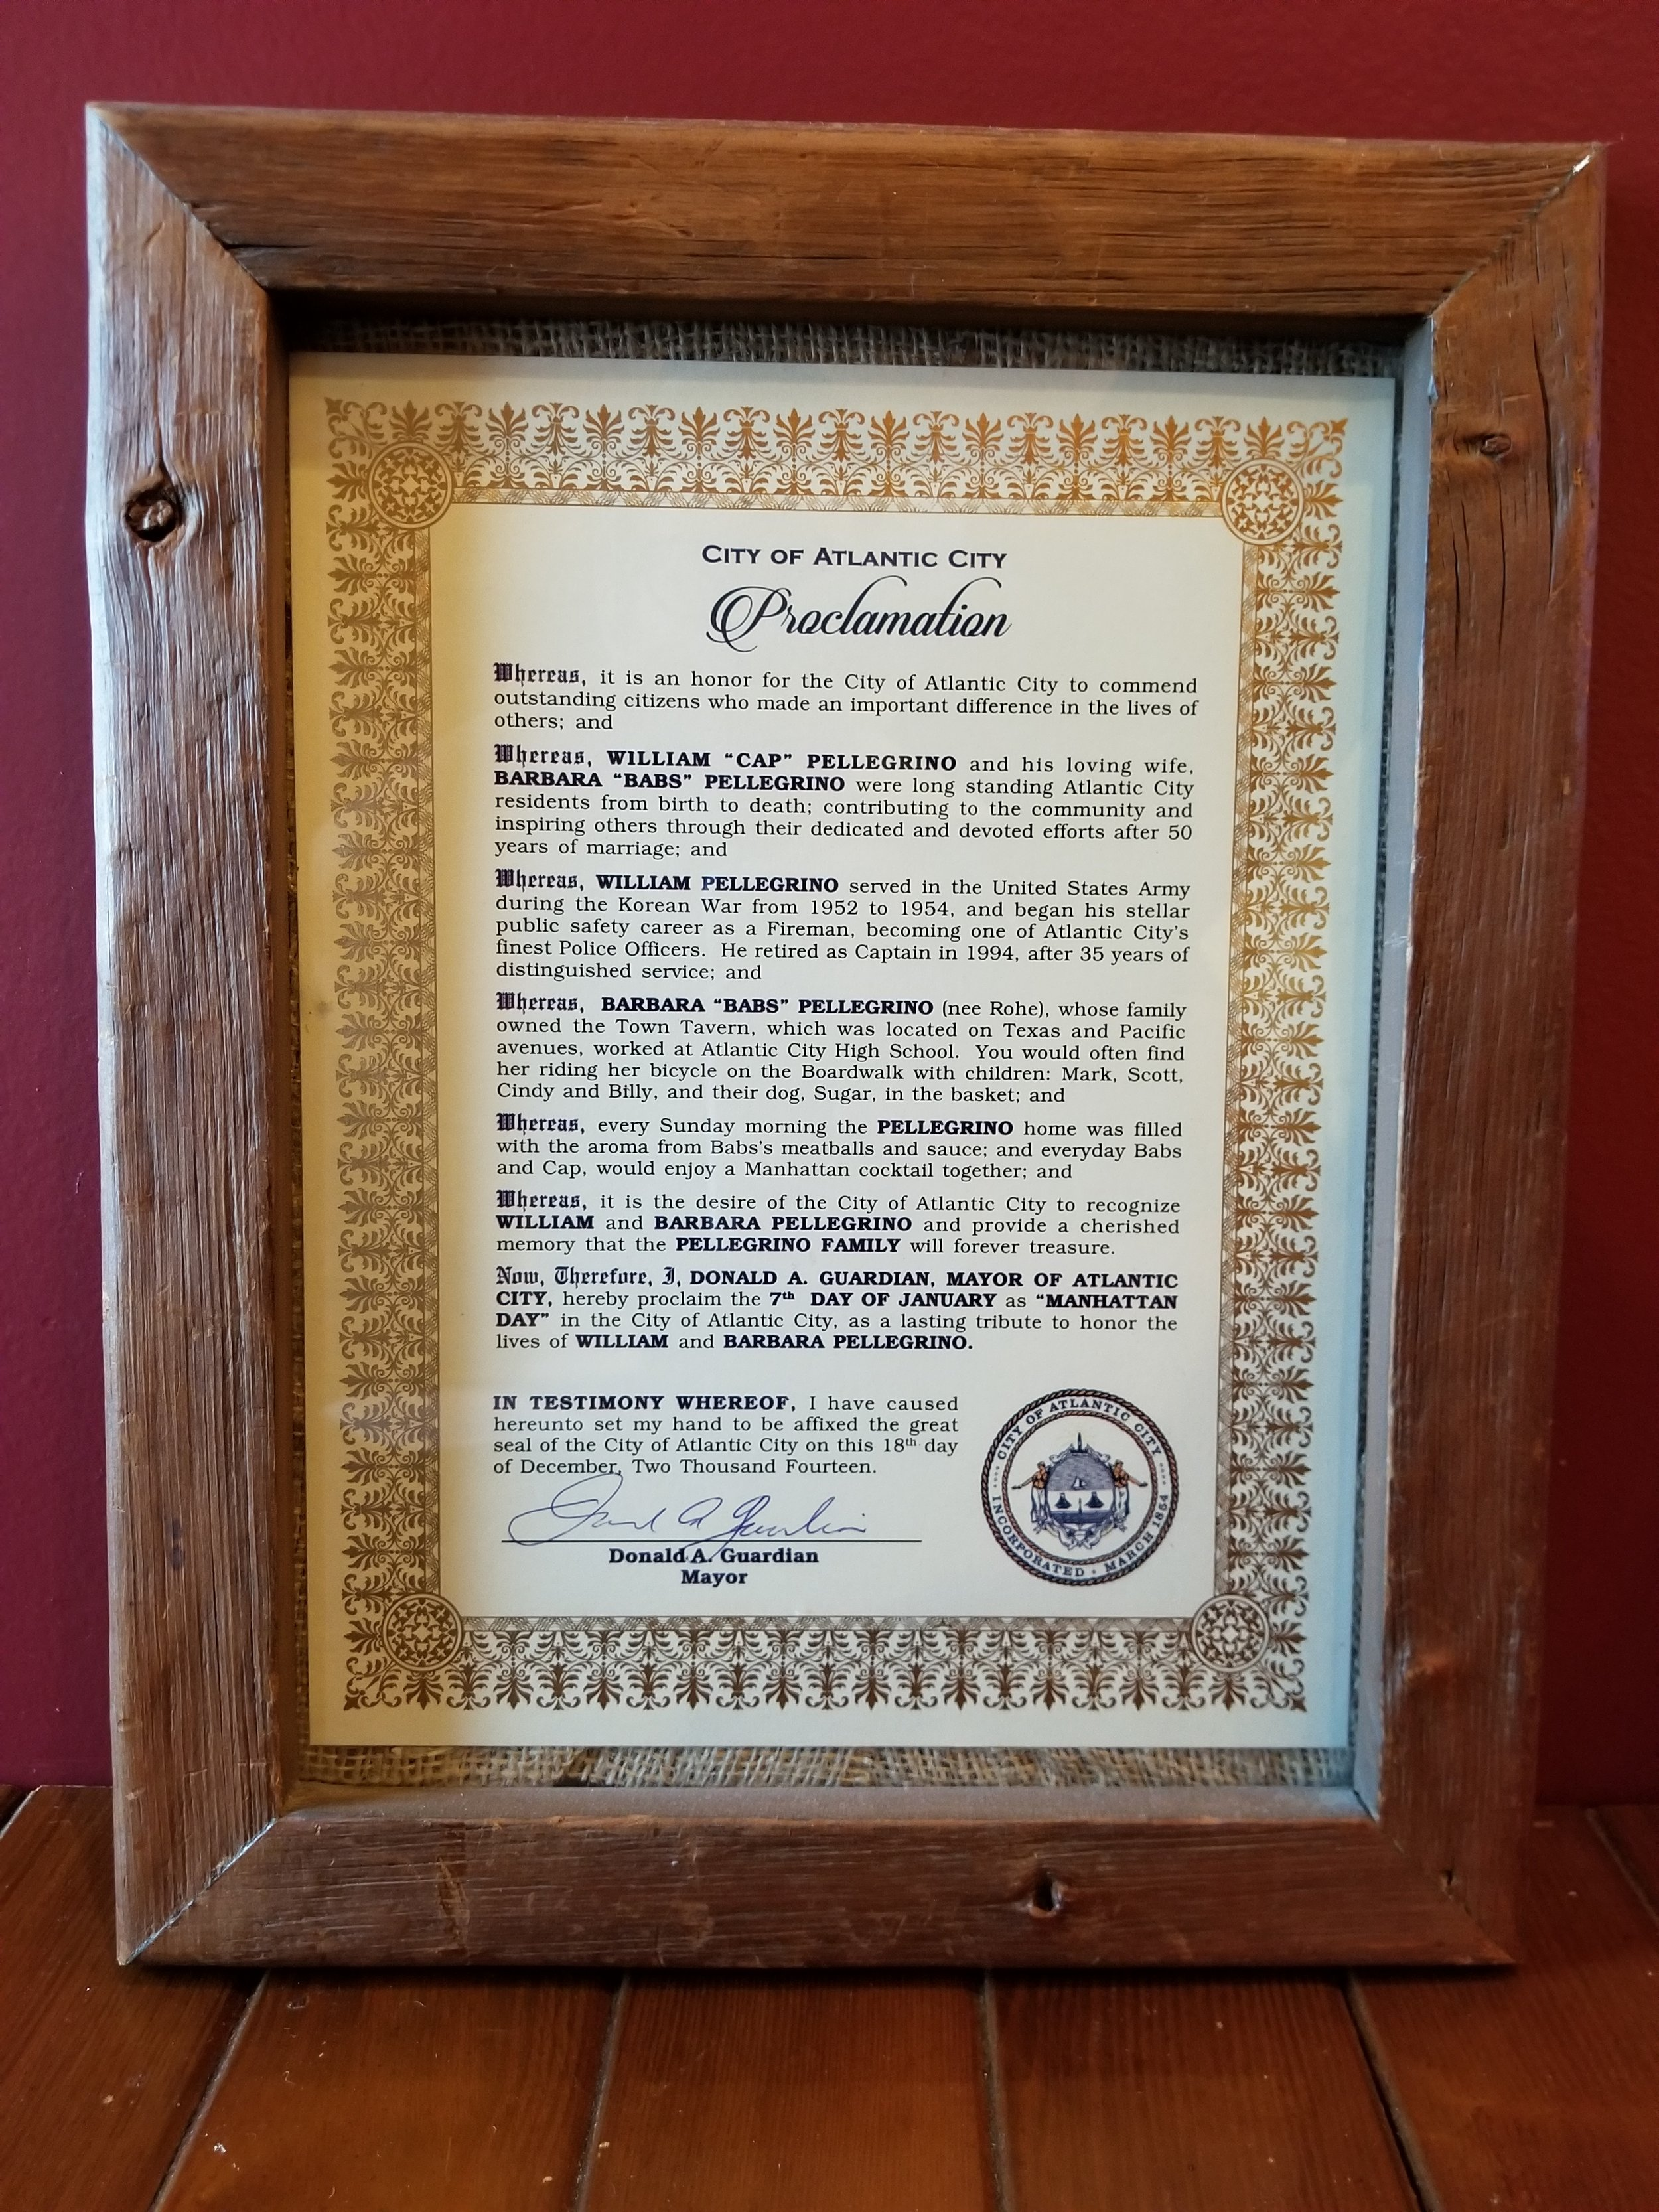 - Proclamation for Manhattan Day in Atlantic City, honoring Mark's parents.